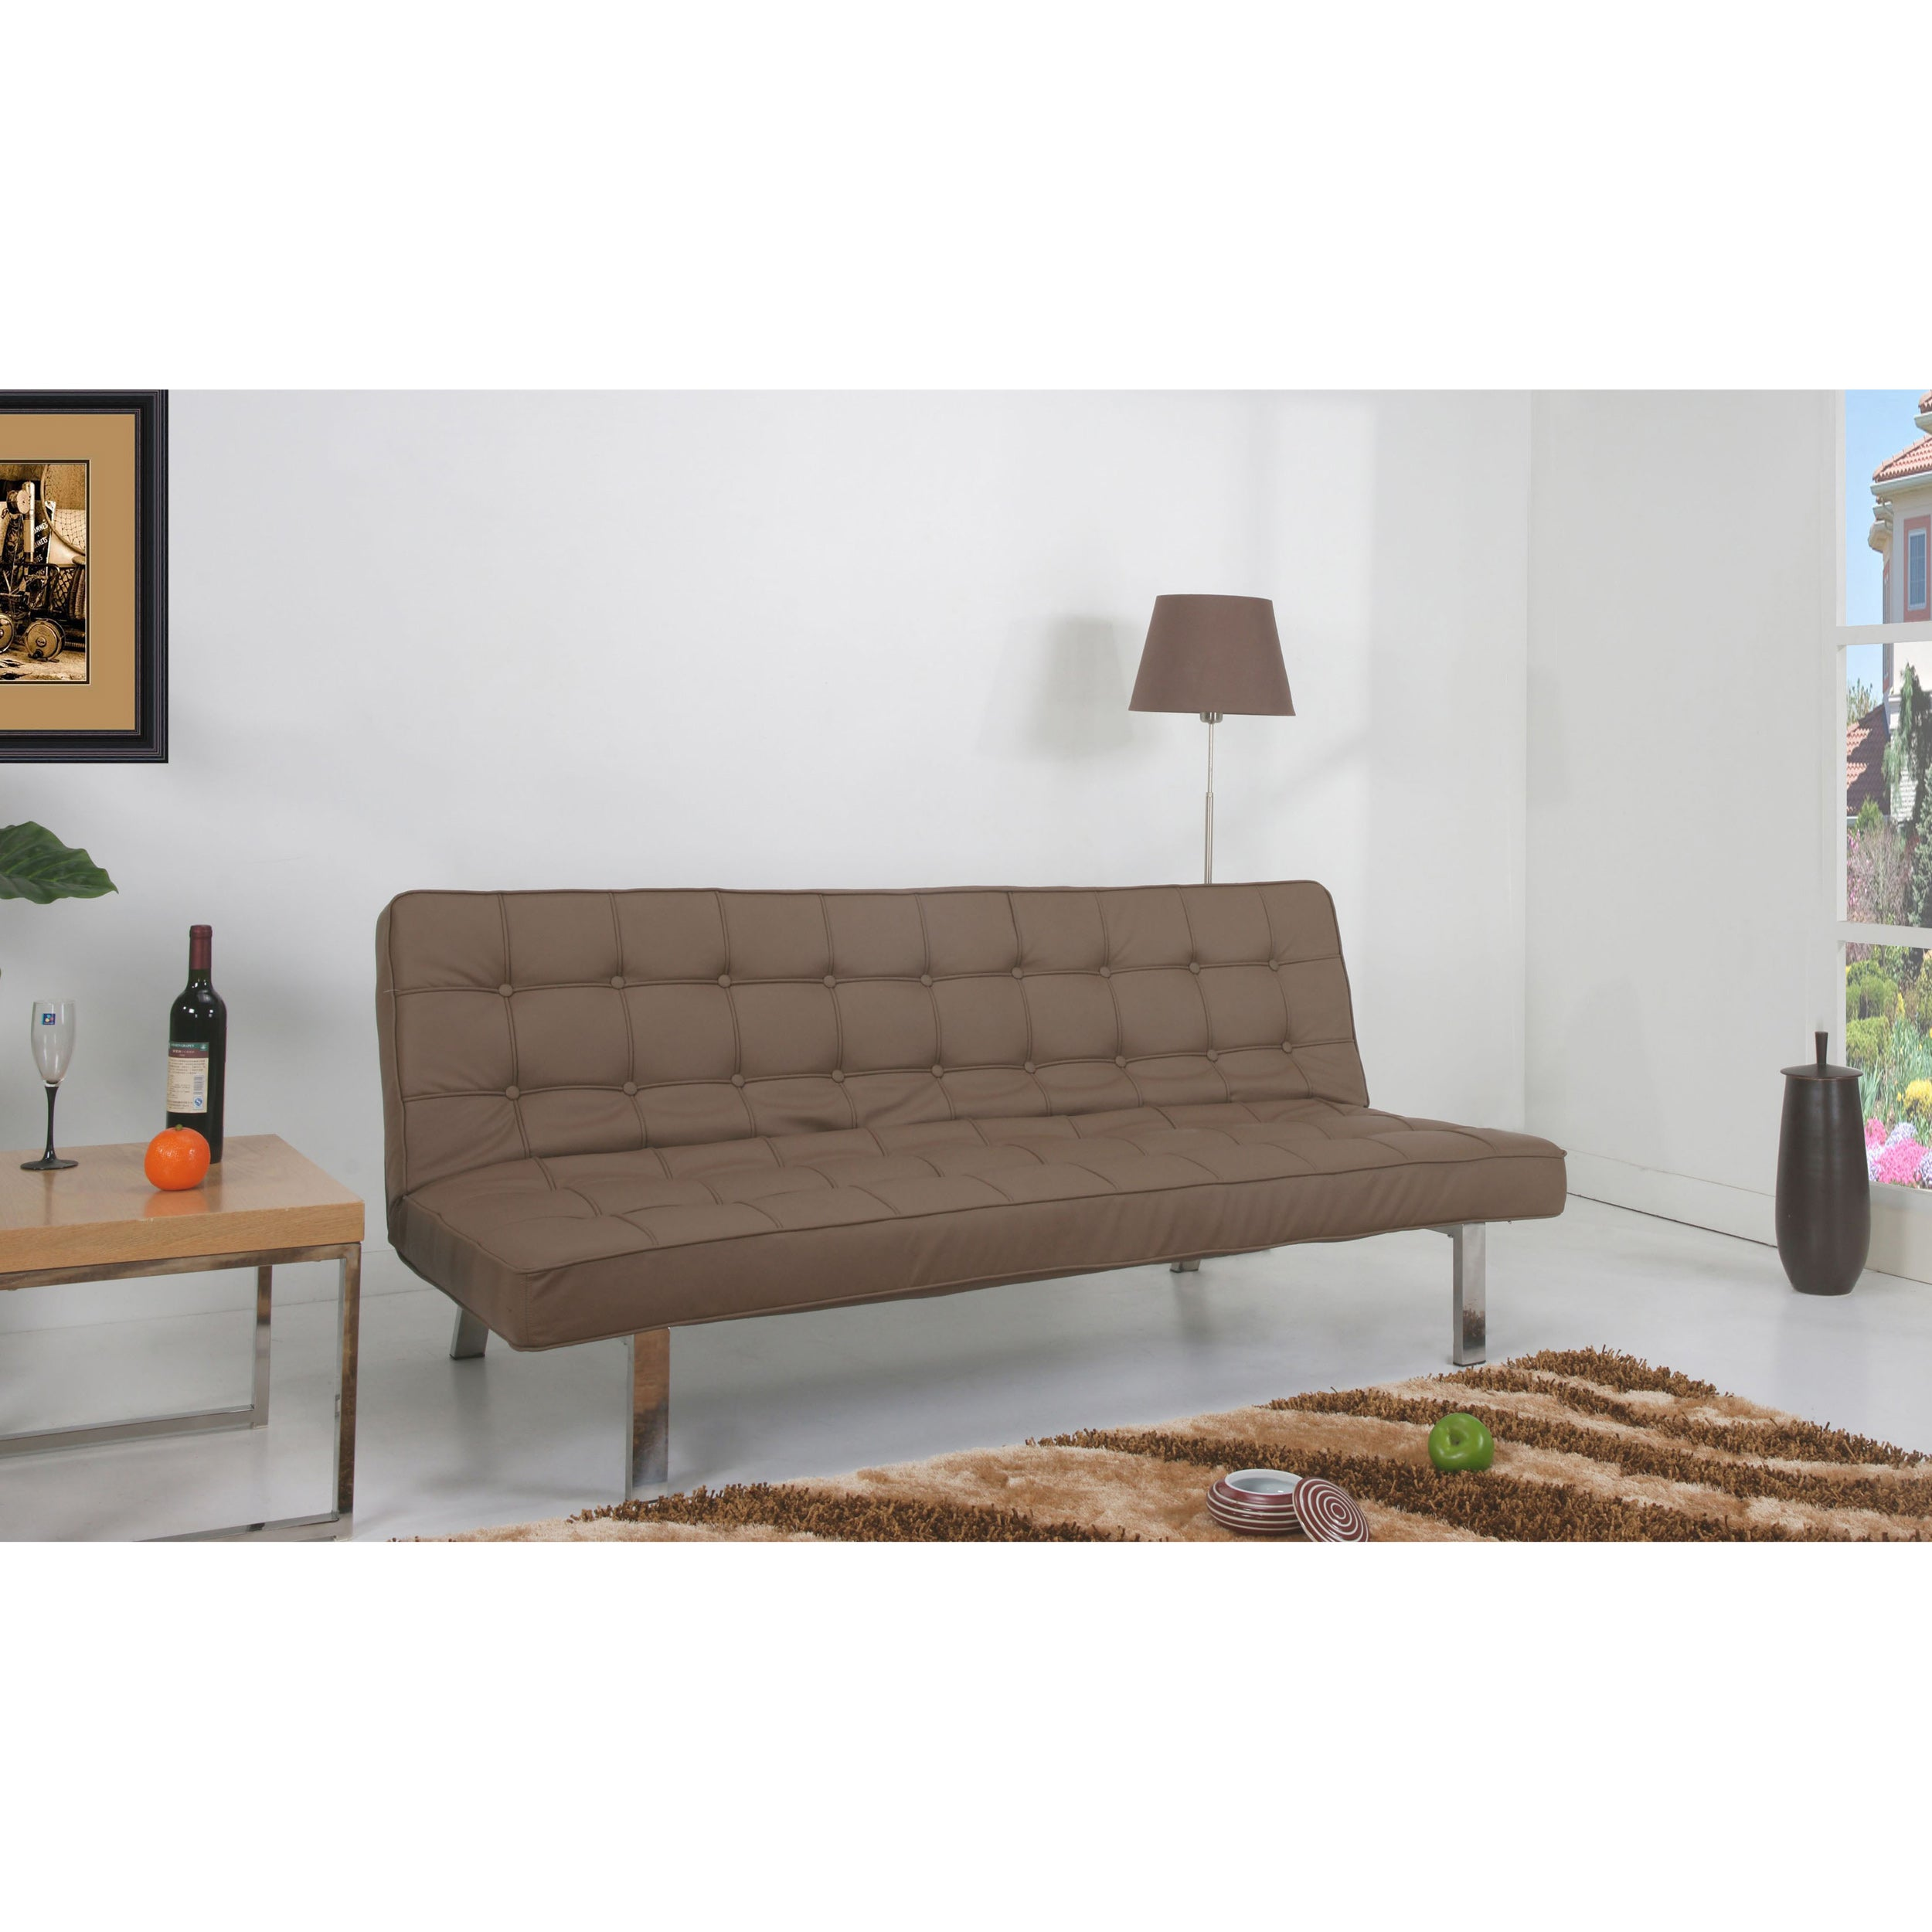 'Vegas' Taupe Futon Sofa Bed at Sears.com